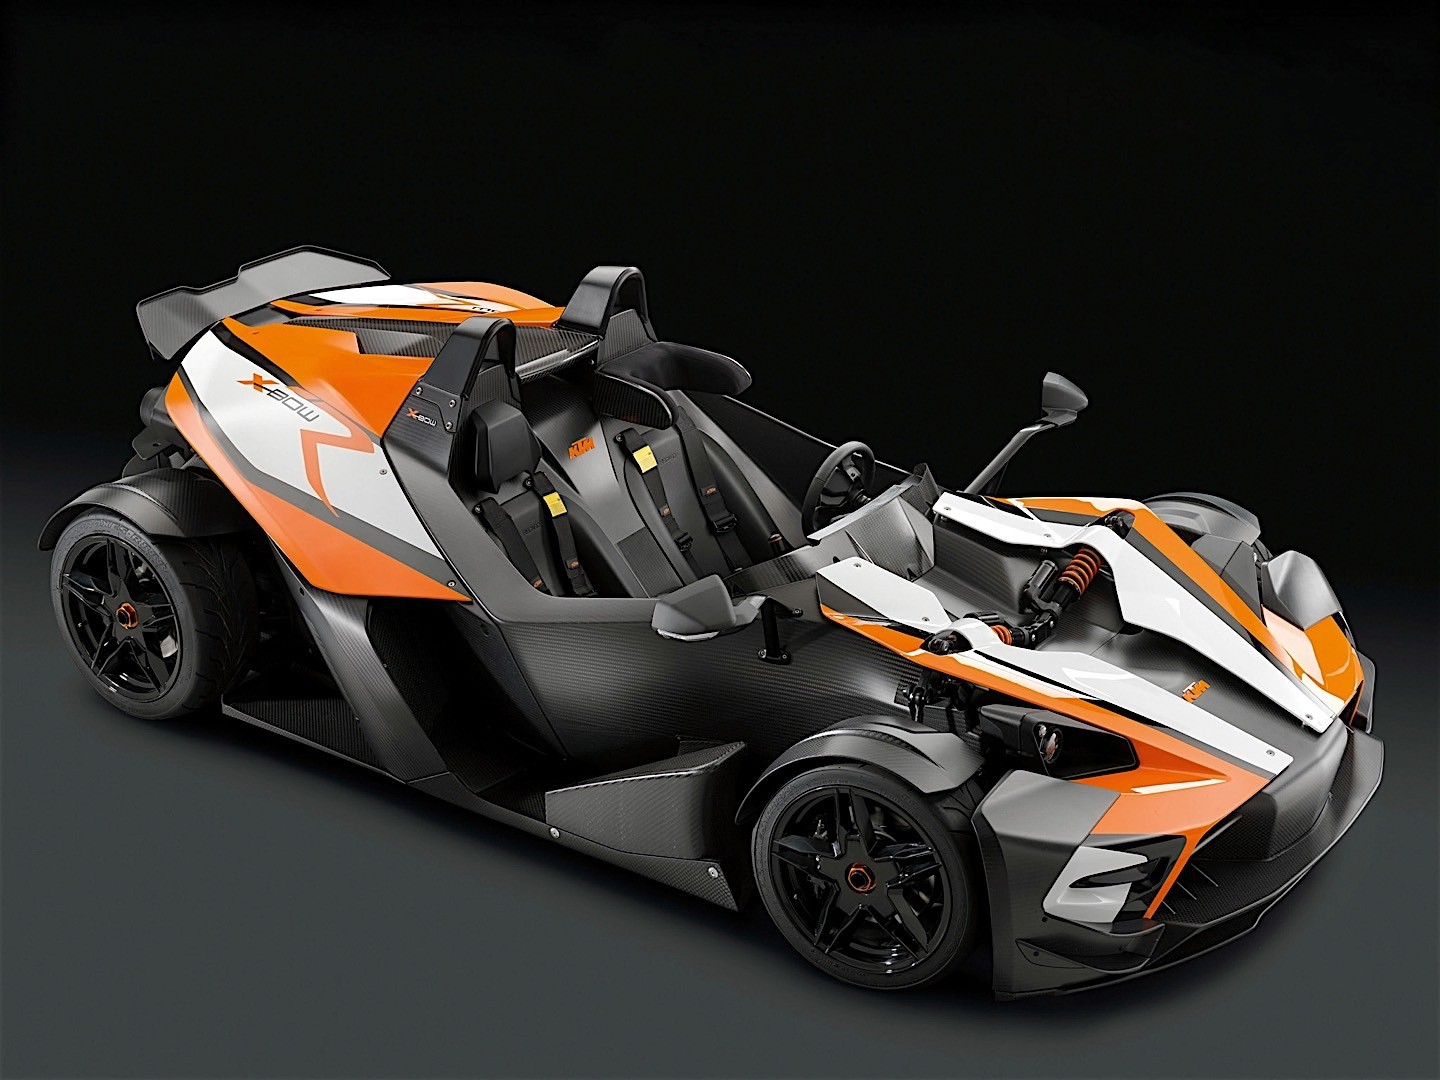 ktm x bow r specs 2011 2012 2013 2014 2015 2016. Black Bedroom Furniture Sets. Home Design Ideas